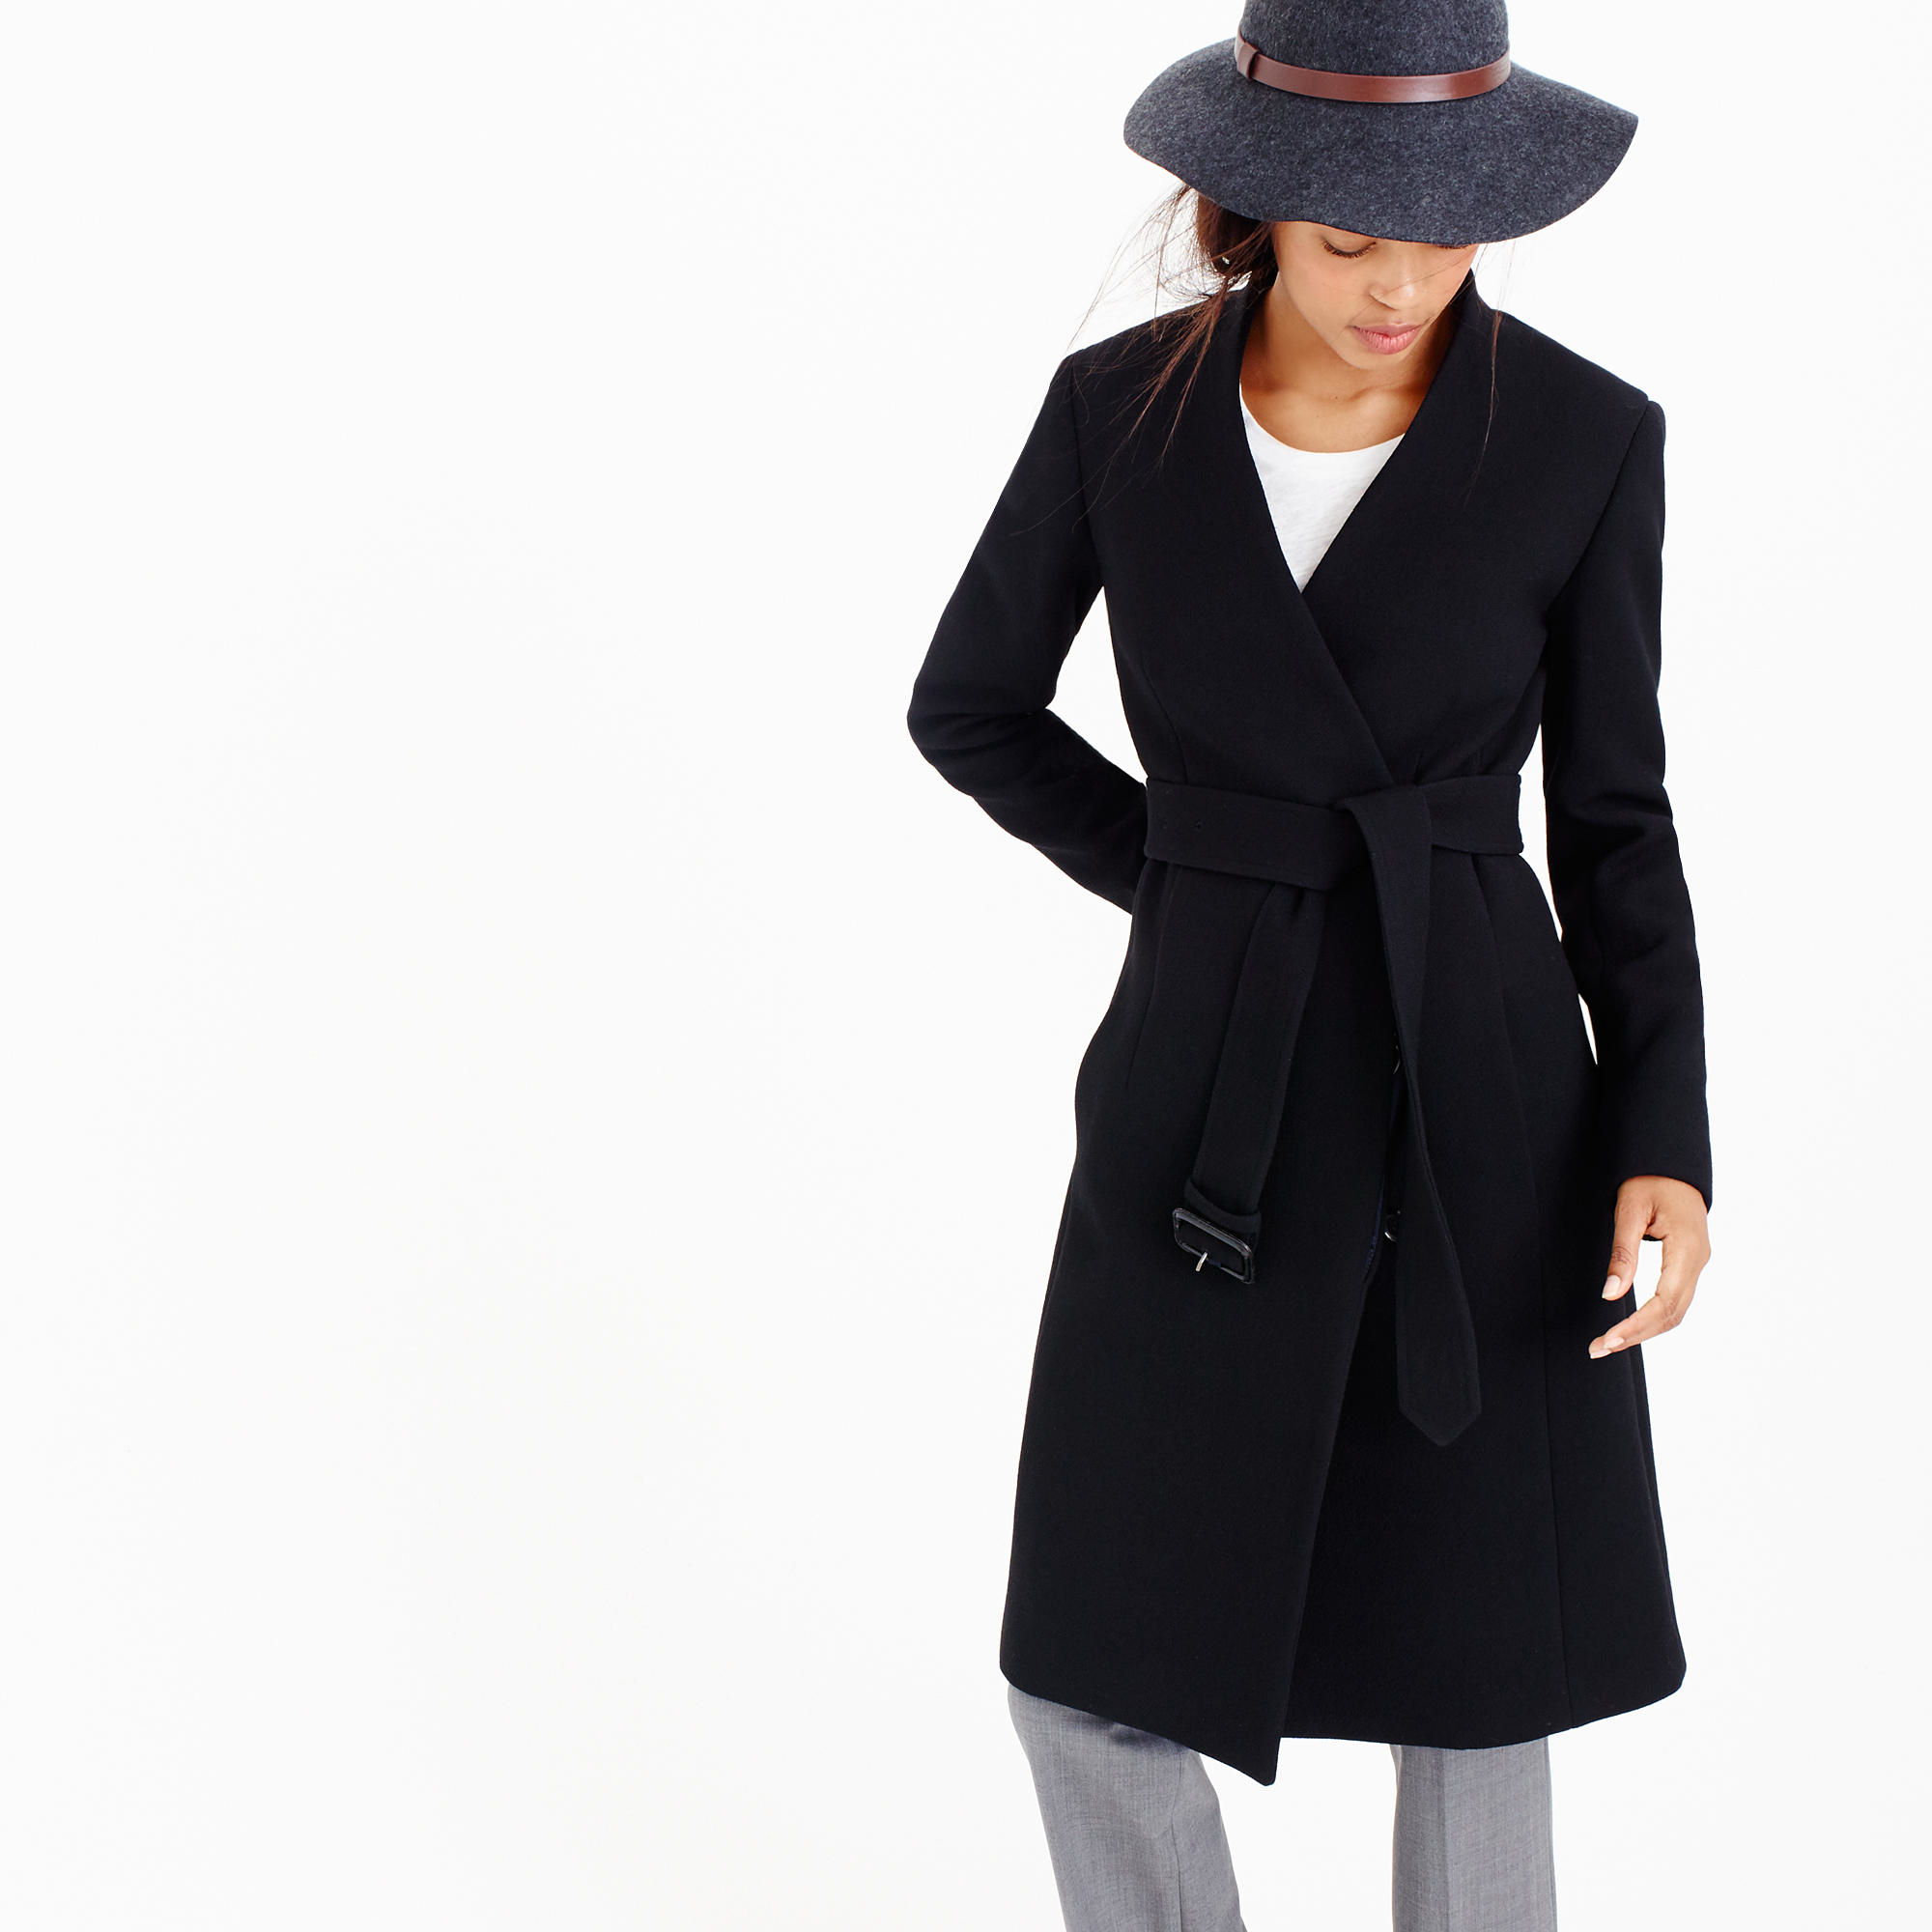 J.crew Collection Collarless V-neck Wrap Coat in Black | Lyst